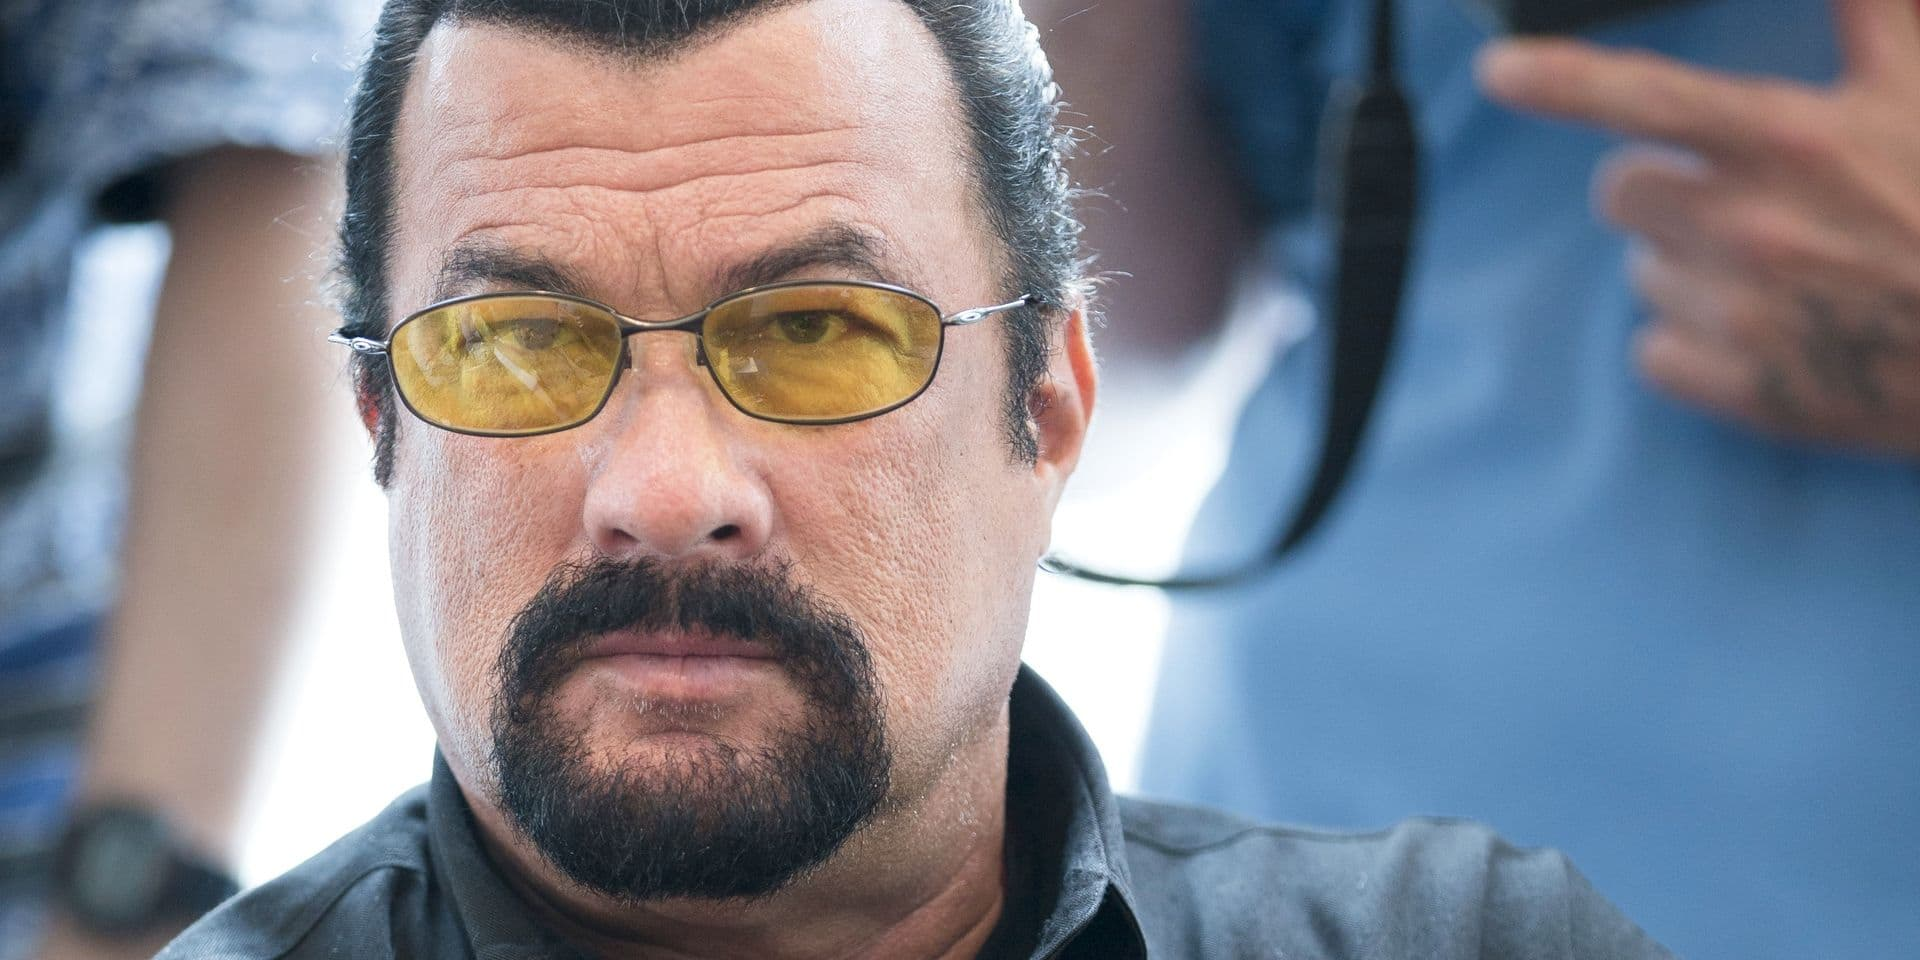 File- This June 2, 2013, file photo shows actor Steven Seagal looking on as he waits for a news conference of U.S. Congressional delegation to Russia in U.S. Embassy in Moscow, Russia. The actor told KNXV-TV that he is considering a shot at Arizona's highest office and has had a talk about the bid with the self-proclaimed toughest sheriff in America. (AP Photo/Alexander Zemlianichenko, File) Associated Press / Reporters